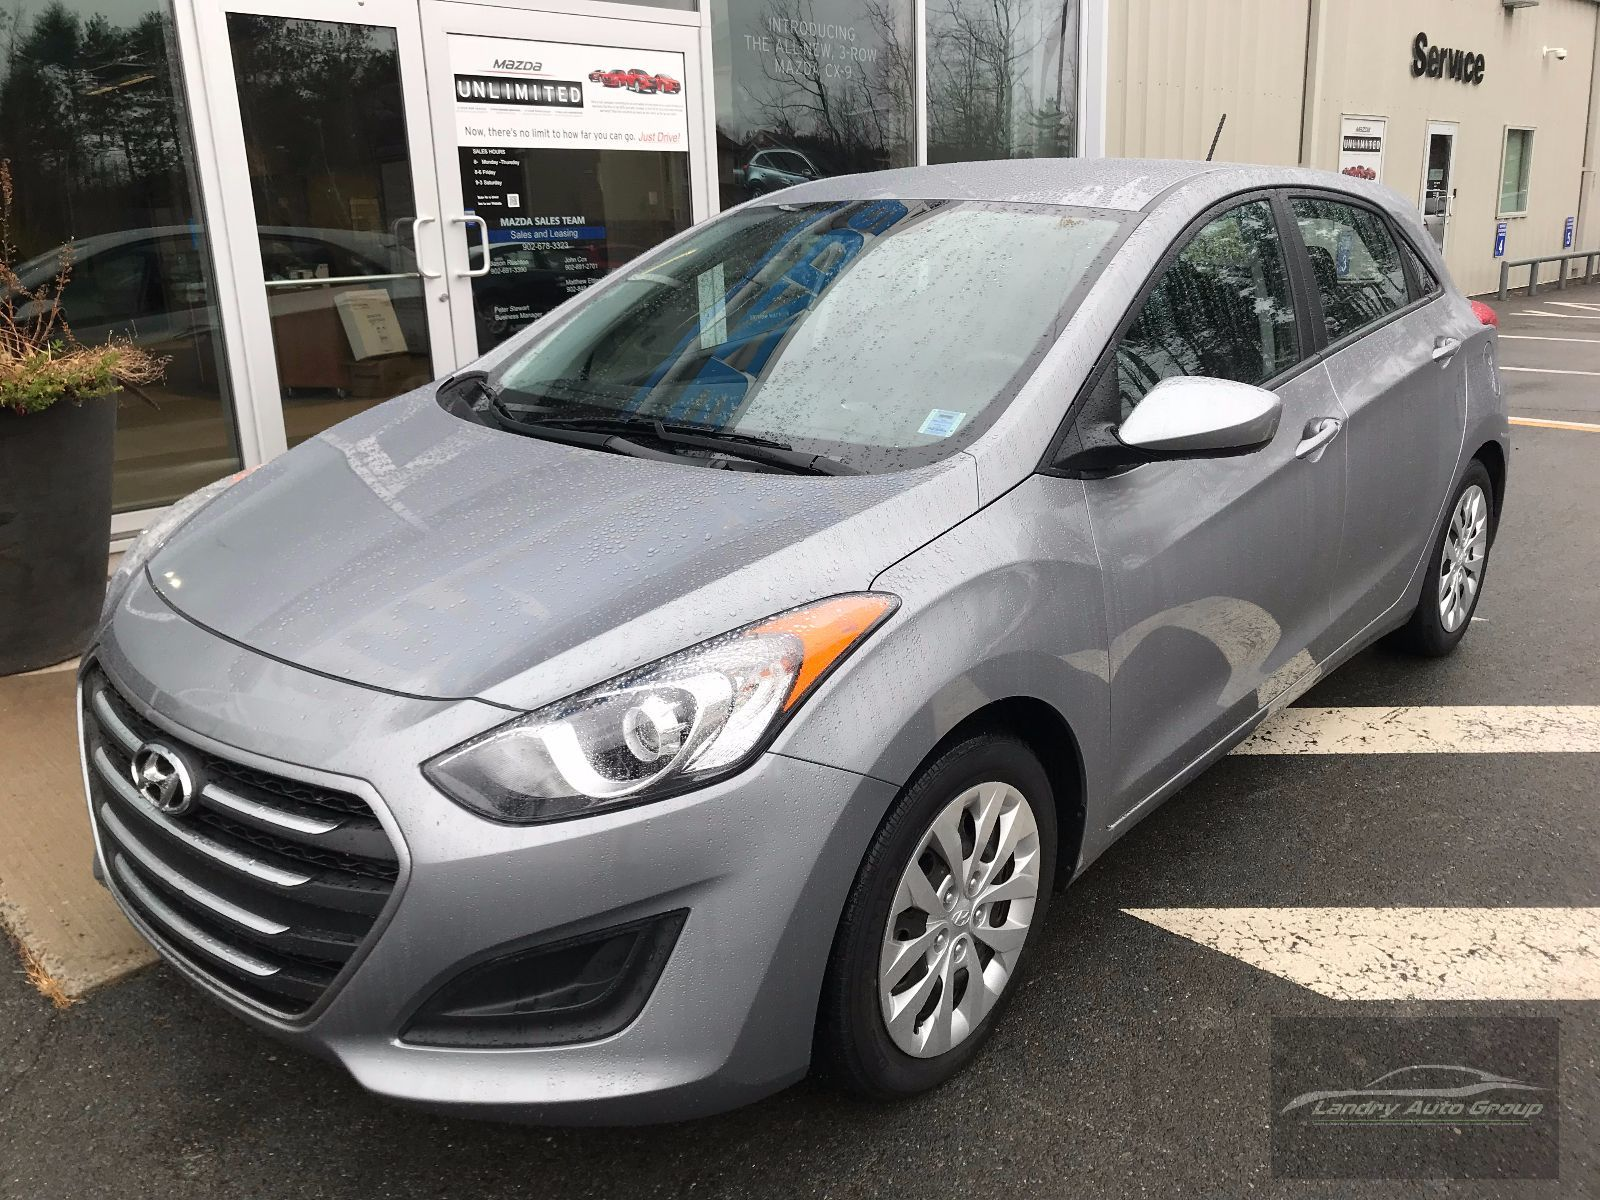 santa lease york fe new auto global front view hyundai motion three leasing sport in quarter inventory car deals